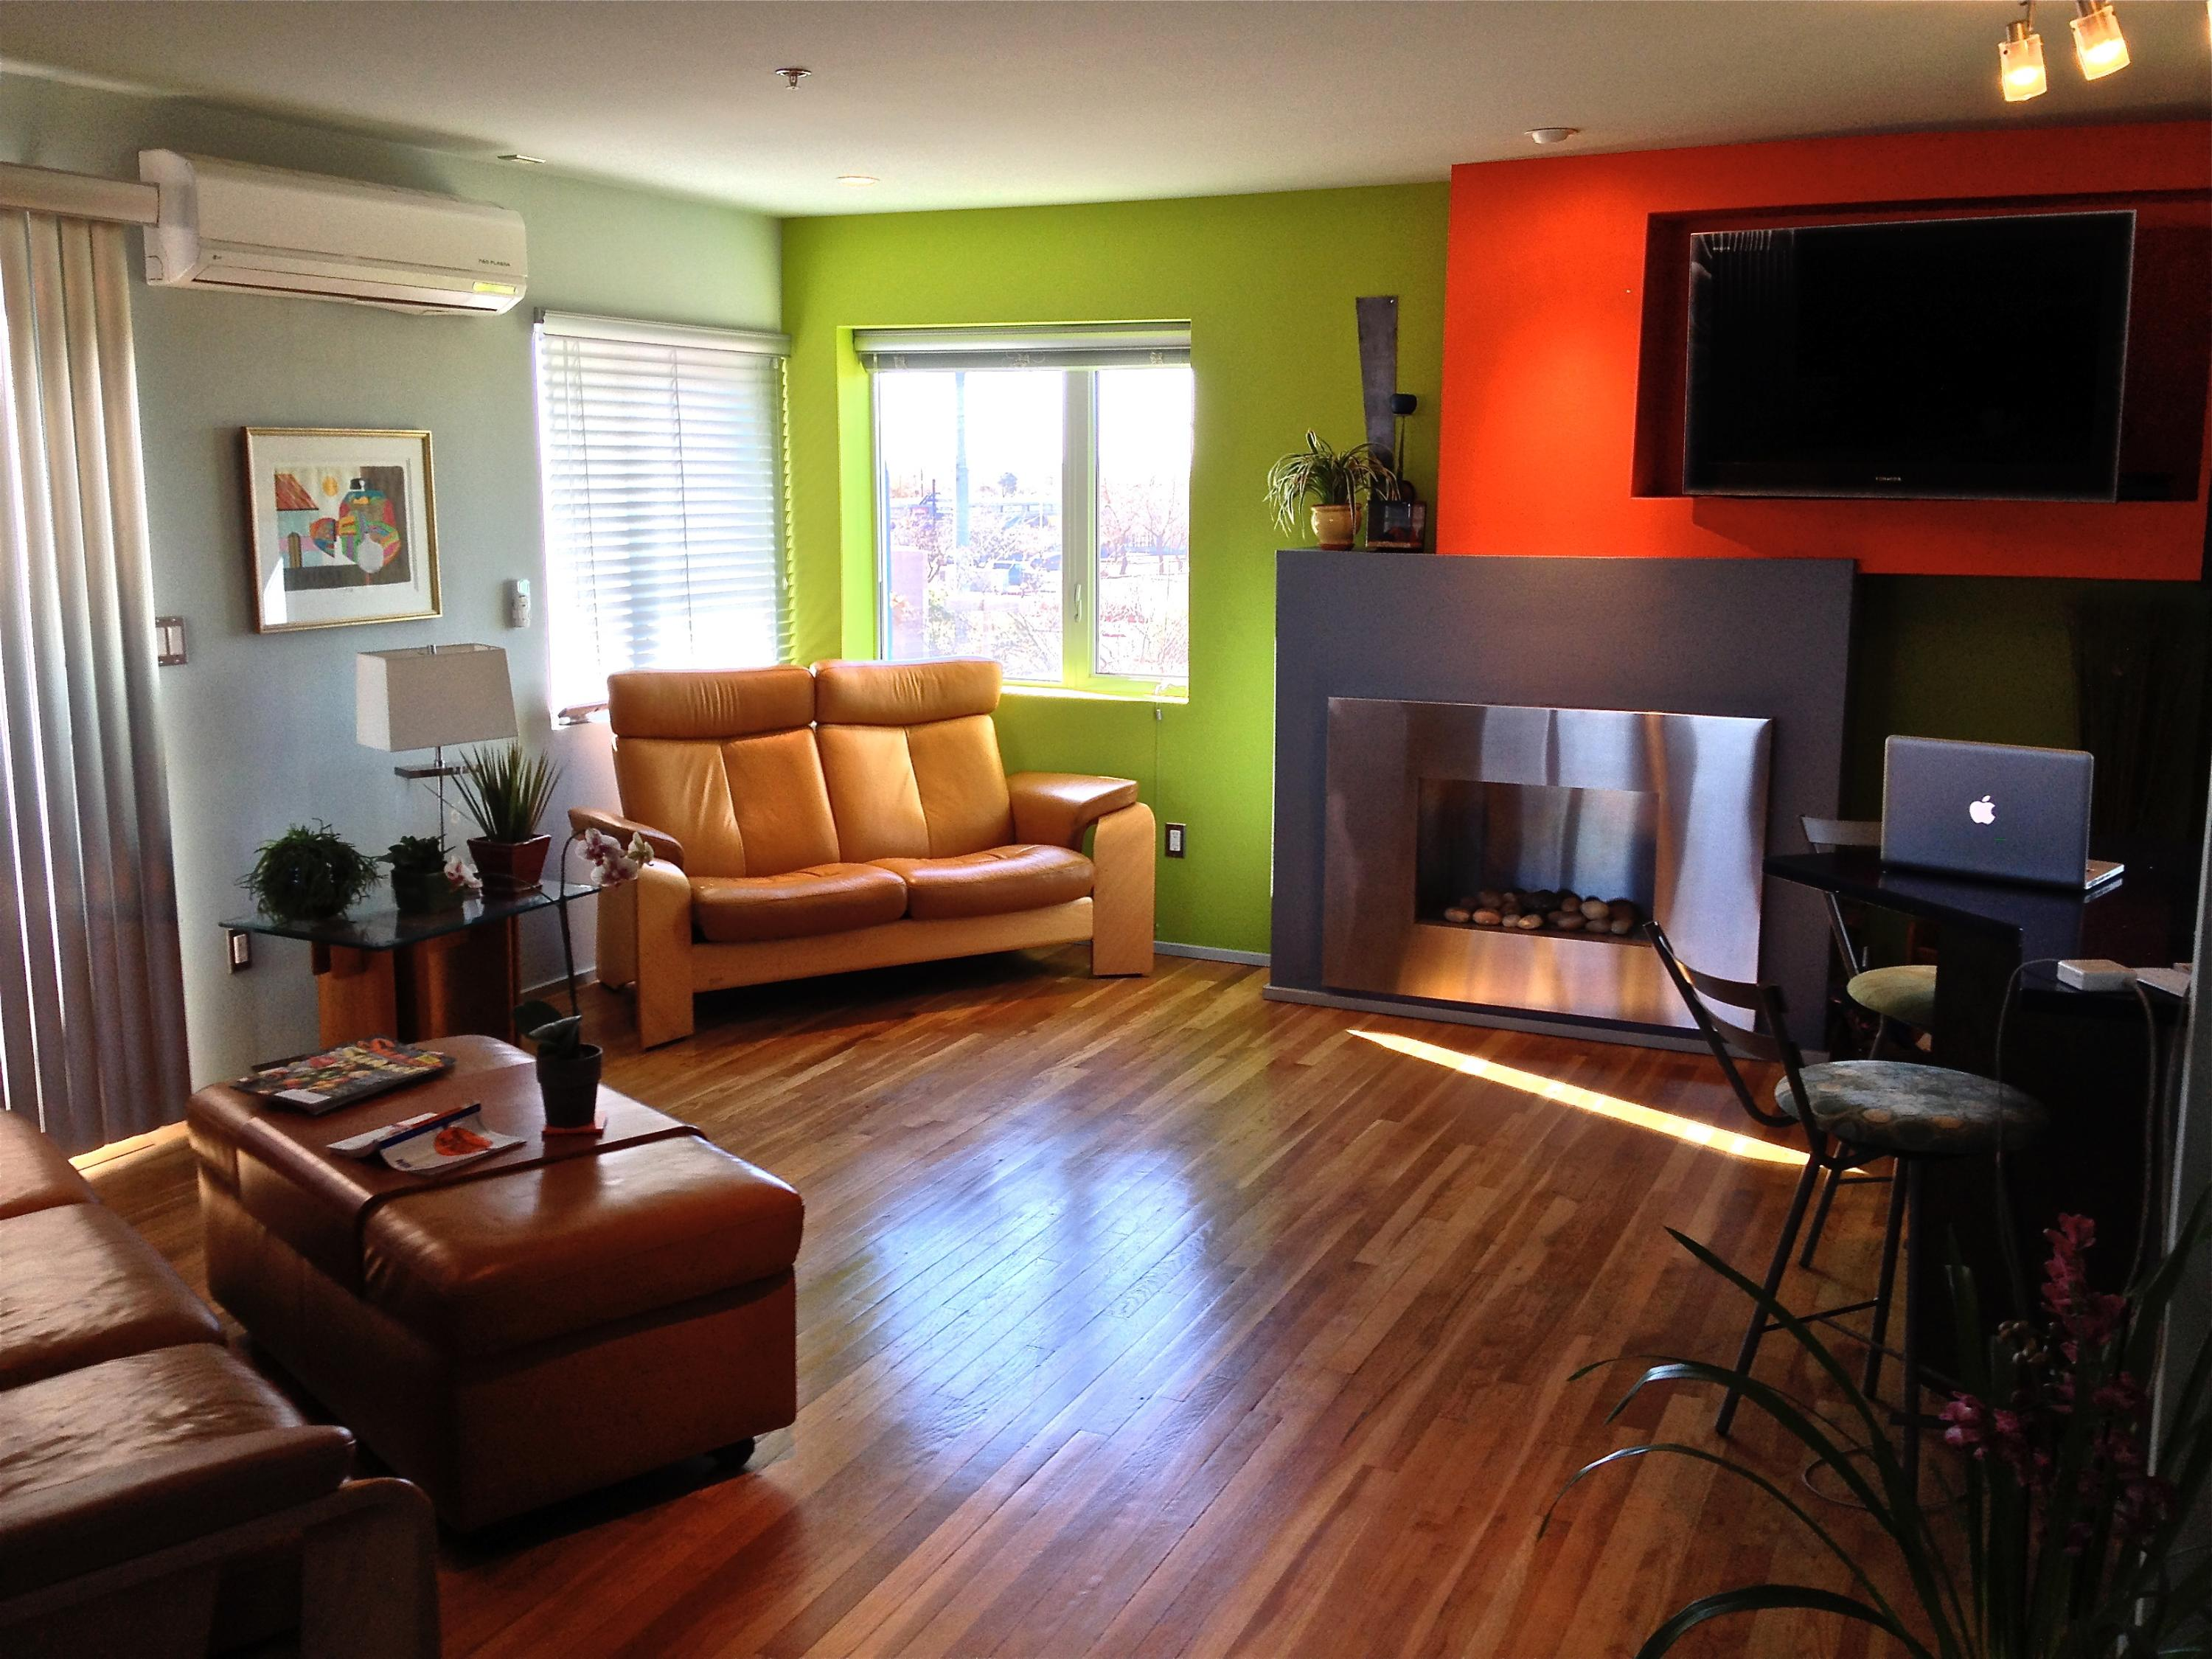 This is your opportunity to own and live in one of Albuquerque's most iconic buildings across the street from UNM in the heart of Nob Hill. You can own a mansion/penthouse with 360 degree views on top of a 3 story building - with residual income to subsidize the overall price!!!  Amazing building was completely renovated from the ground up in 2010. This 3rd floor penthouse unit has 360 degree views from the expansive roof-top patio.  The additional 5 units and retail space are all rented!  See MLS #909945 to see information and photos on the other units, and ground floor commercial  spaces.